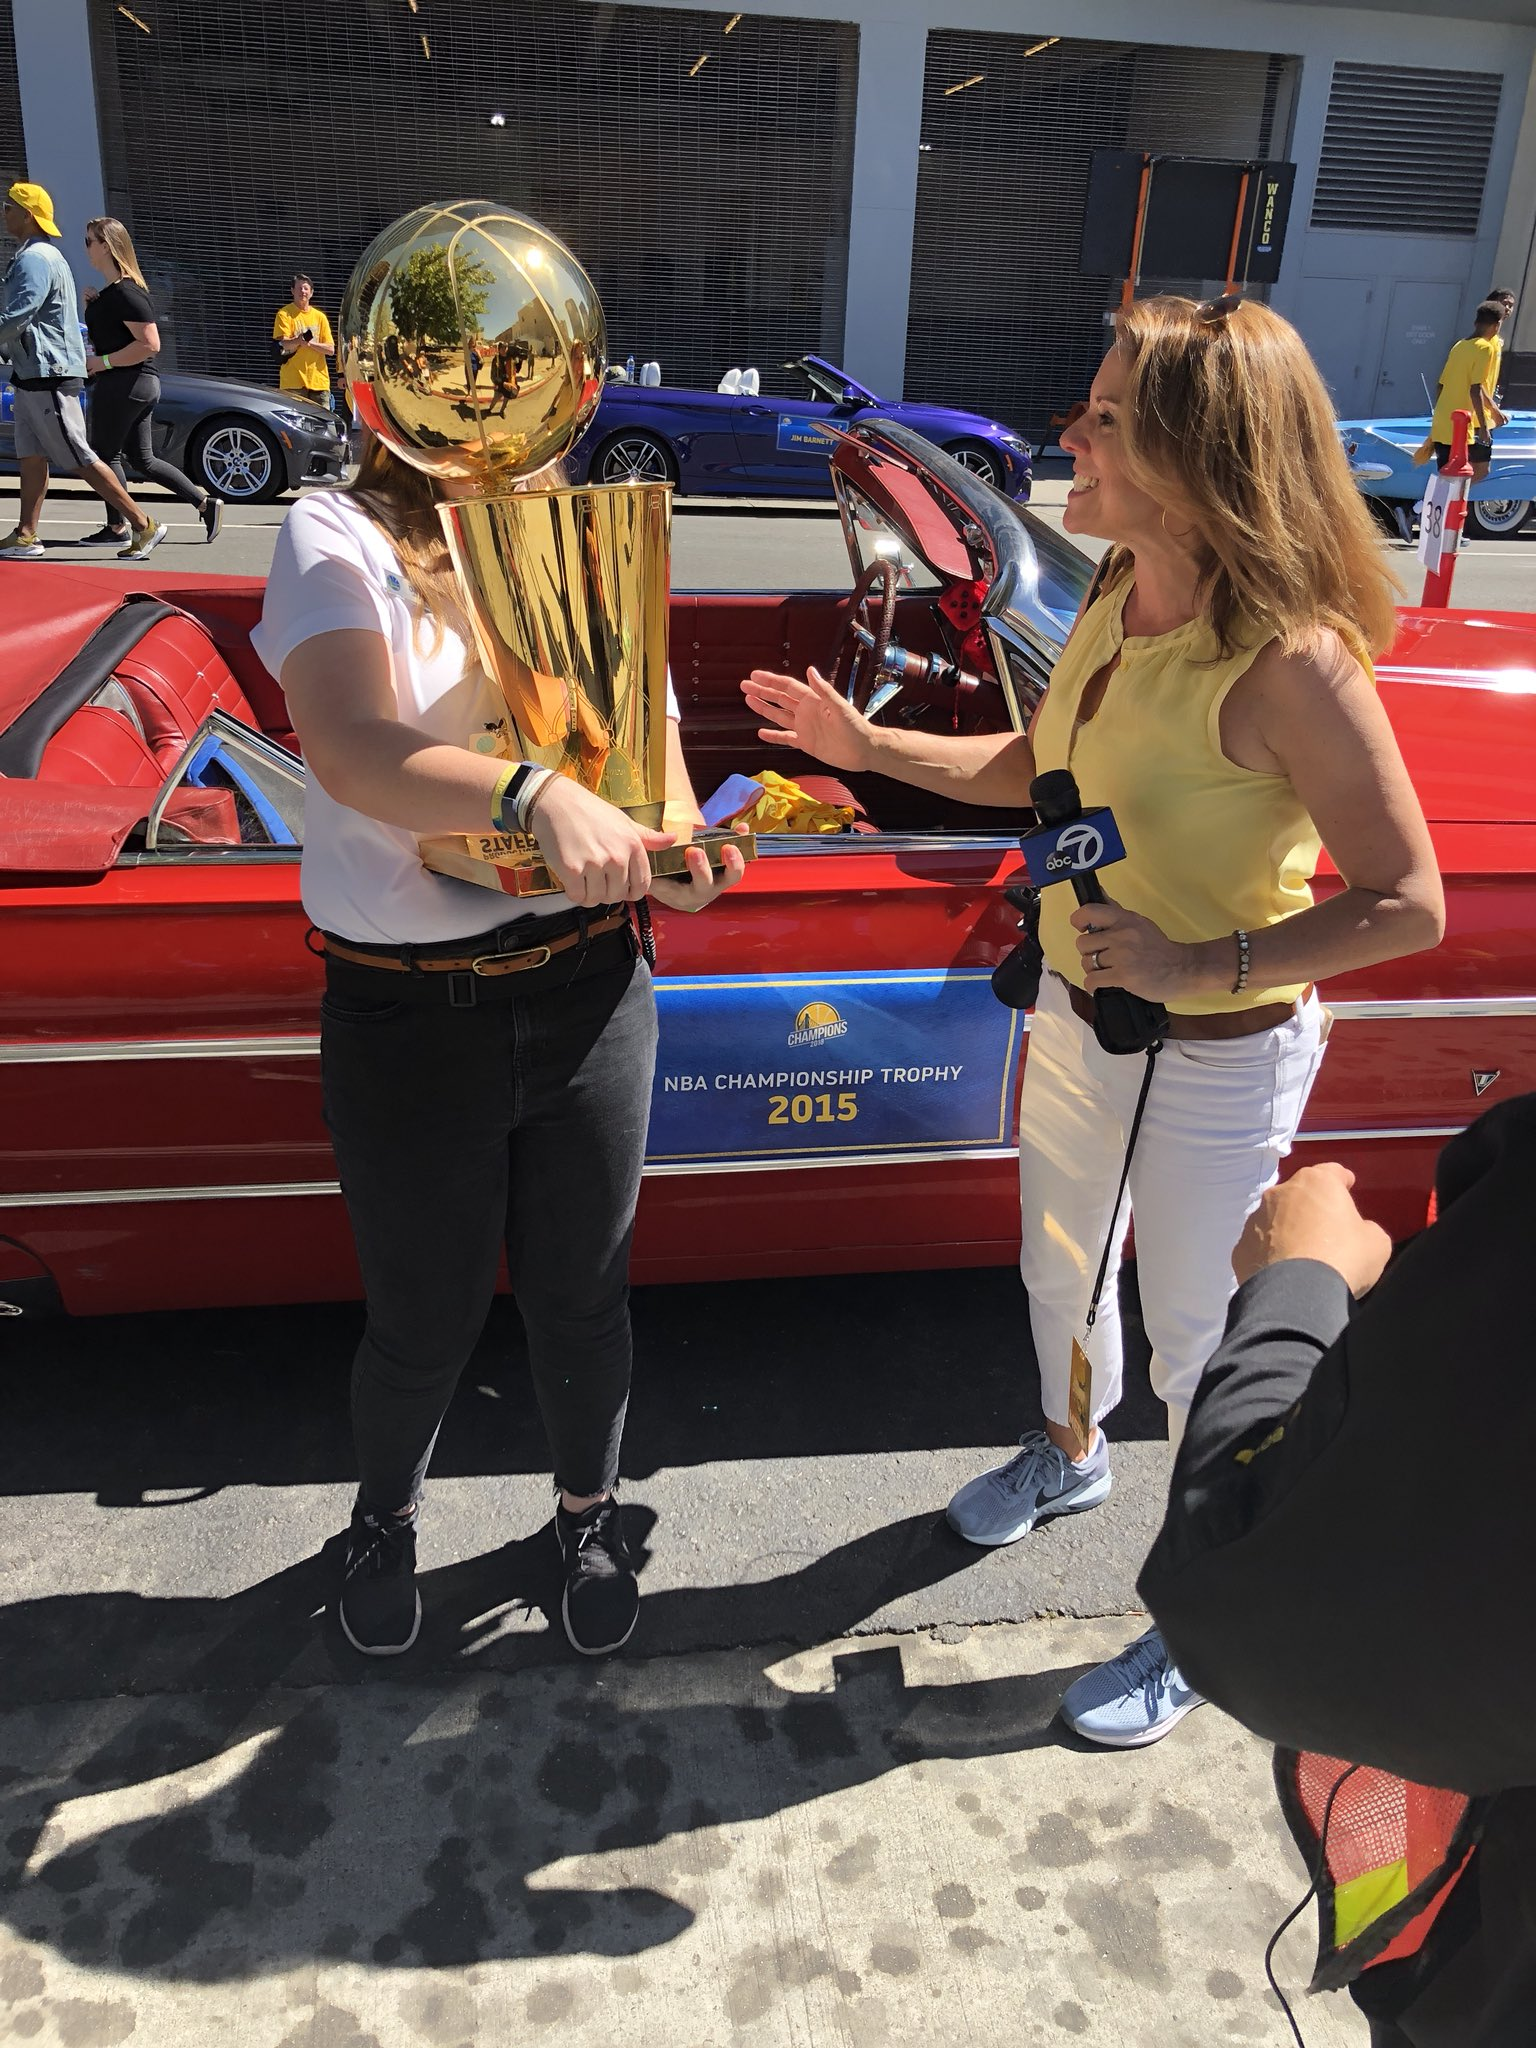 <div class='meta'><div class='origin-logo' data-origin='none'></div><span class='caption-text' data-credit='KGO-TV'>Mindi Bach spotted the Larry O'Brien Trophy while covering the Warriors victory parade on Tuesday, June 12, 2018 in Oakland, Calif.</span></div>